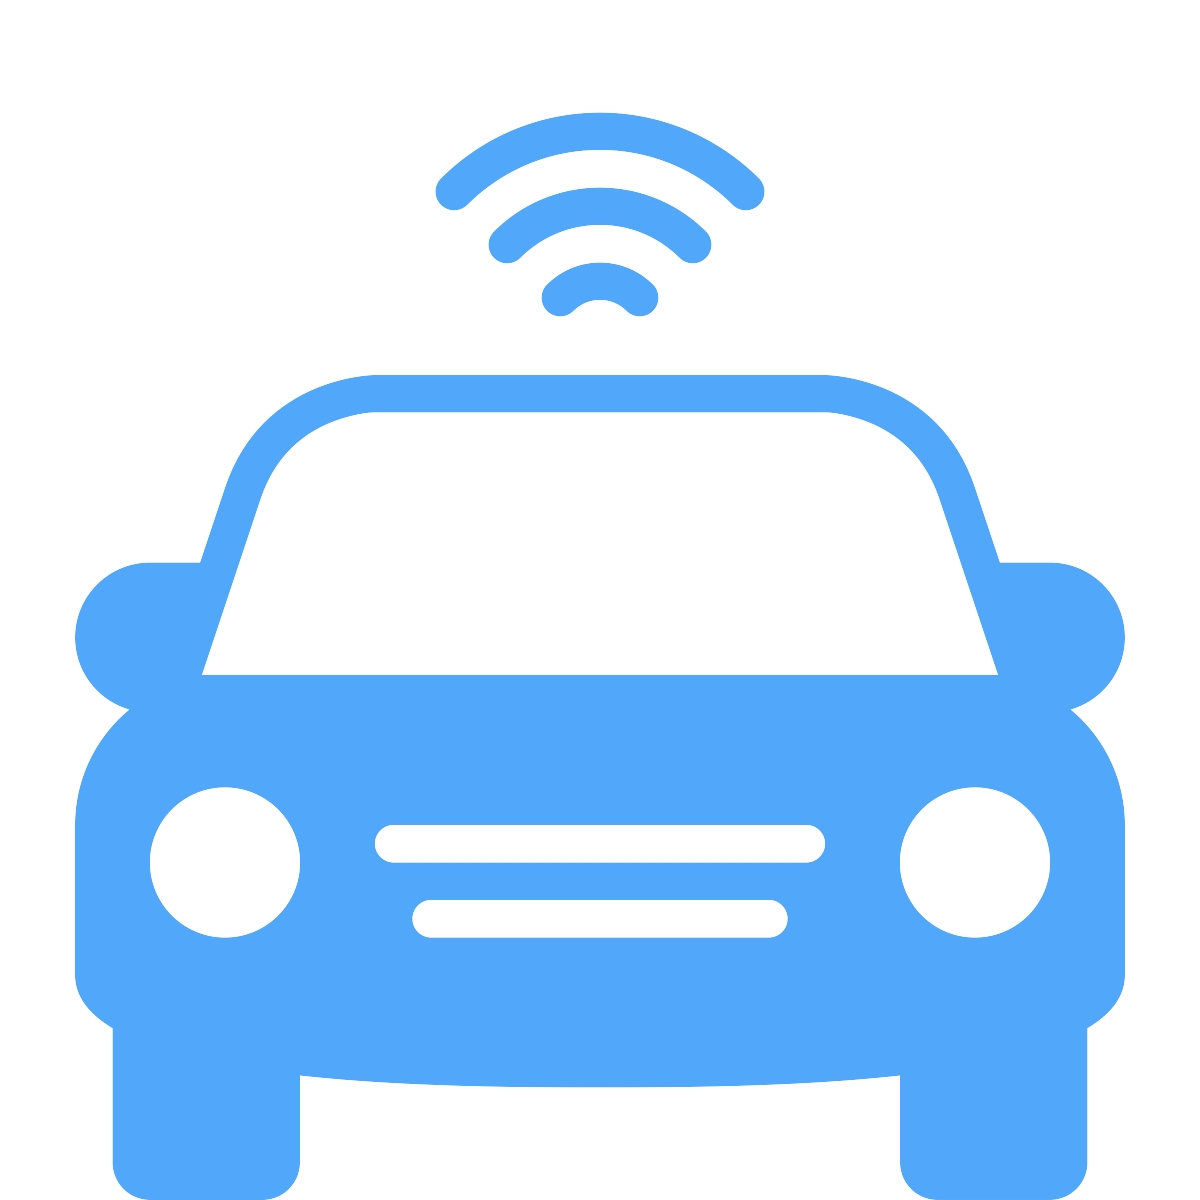 Connected Car: Over-The-Air Updates während des Fahrens